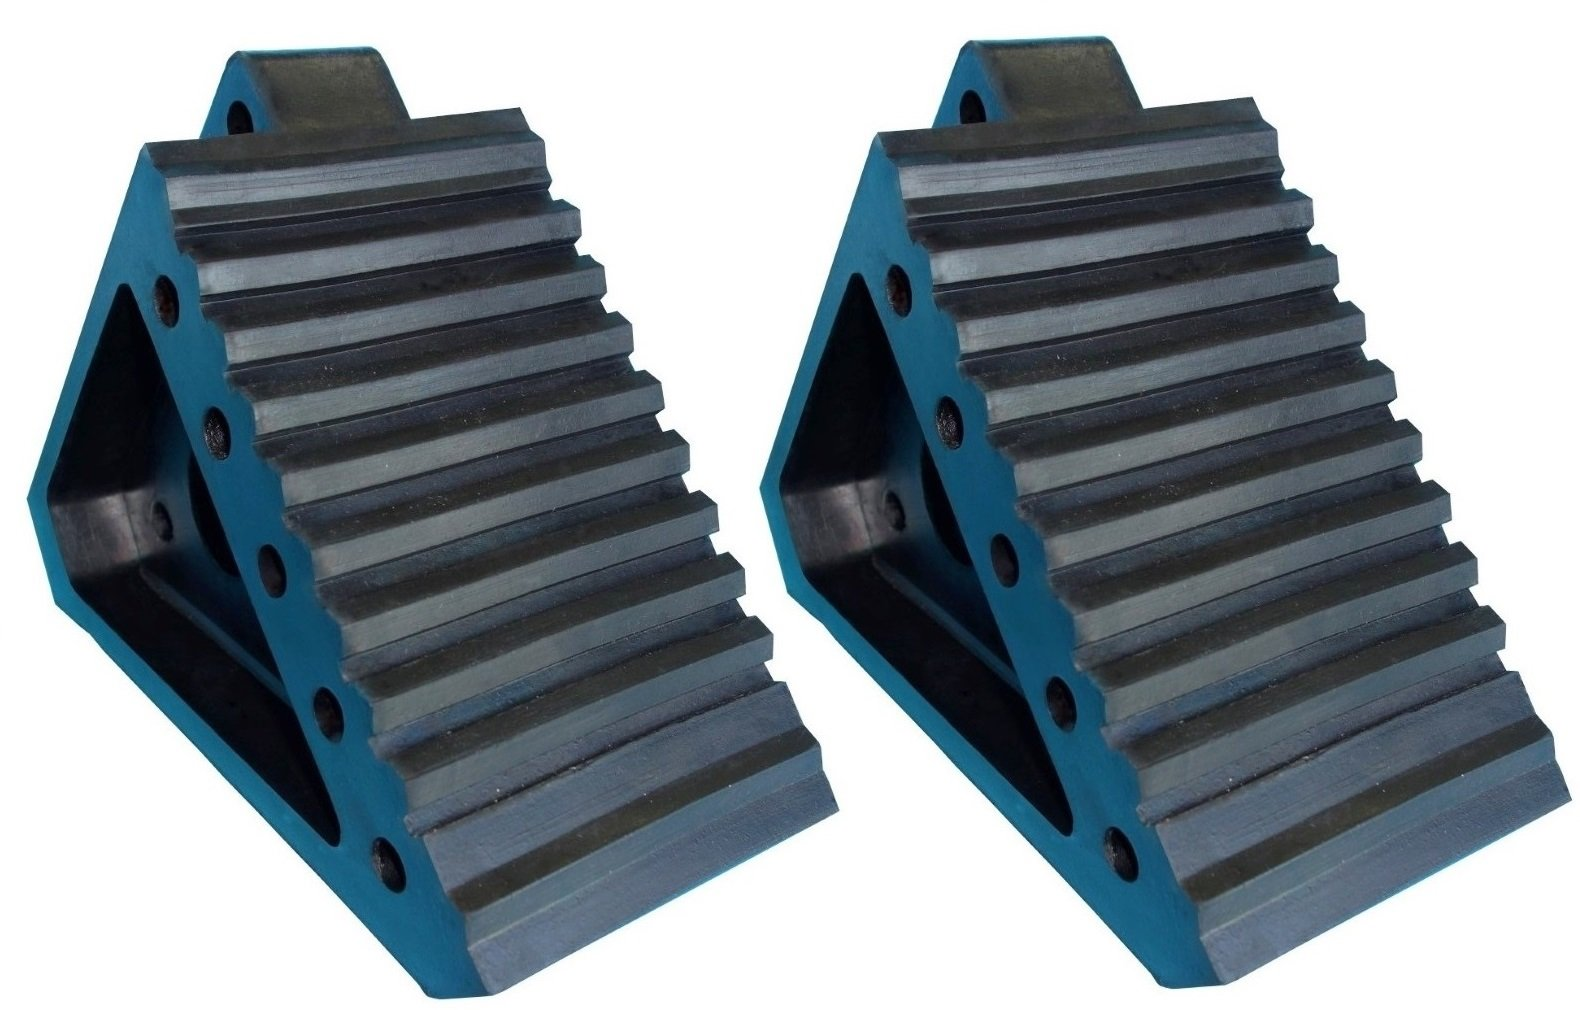 YM W4194 Solid Rubber Wheel Chock with Handle, 8-3/4'' Length, 4'' Width, 6'' Height - Pack of 2